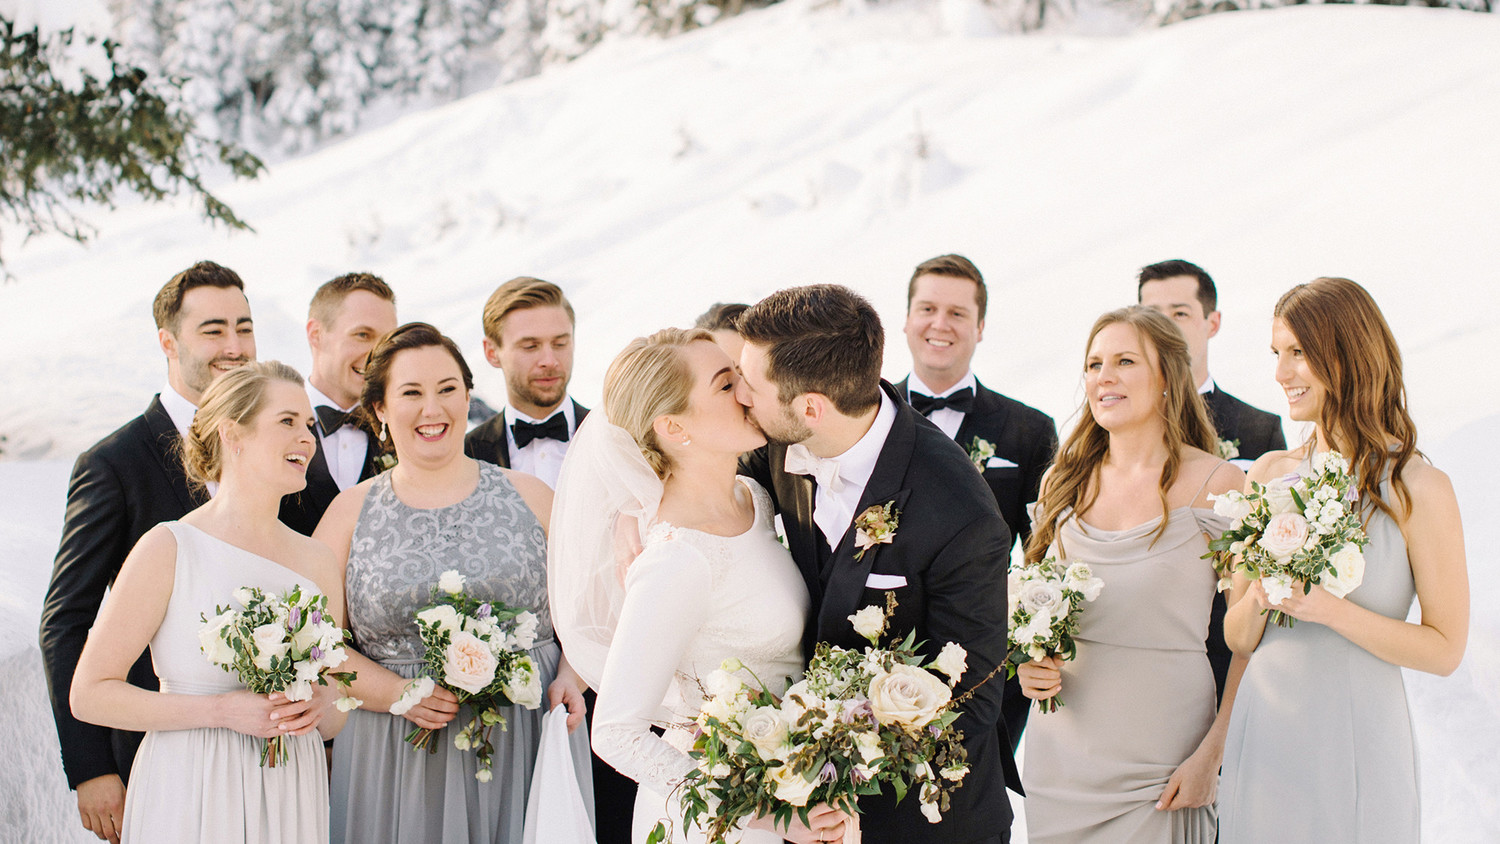 Wedding Party Photography: How To Choose A Wedding Party You'll Love